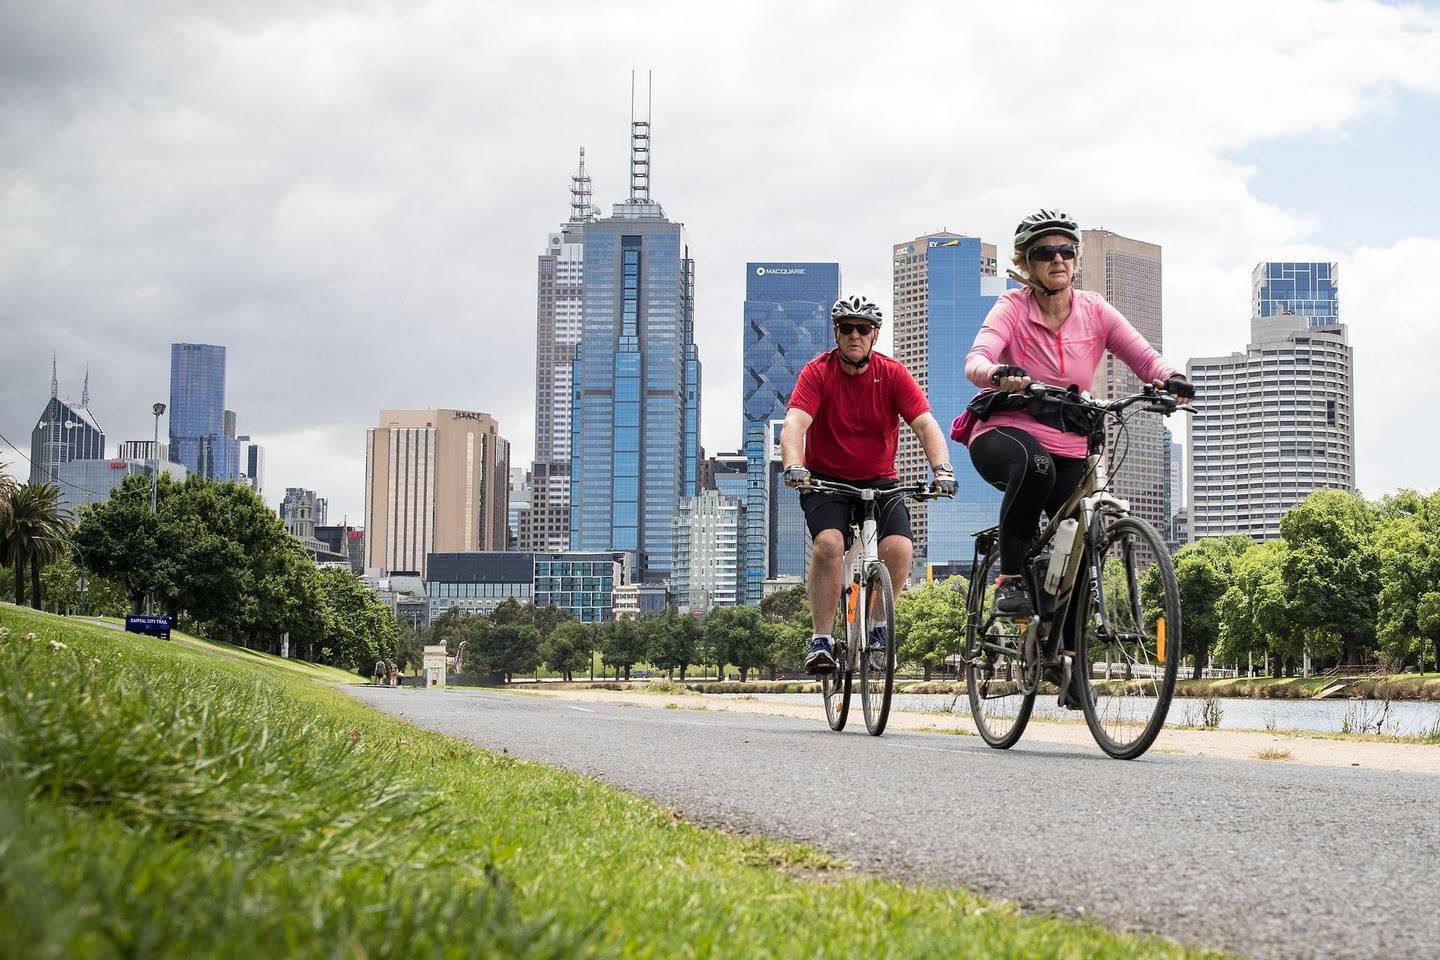 MELBOURNE, AUSTRALIA - NOVEMBER 19: People enjoy riding bicycles along the Yarra River on November 19, 2020 in Melbourne, Australia. Victoria has recorded 20 consecutive days without a new coronavirus case. Lockdown restrictions in Melbourne were lifted on 28 October, after strict measures were imposed on 2 August 2020 following a second wave of COVID-19 cases in the community. (Photo by Darrian Traynor/Getty Images)